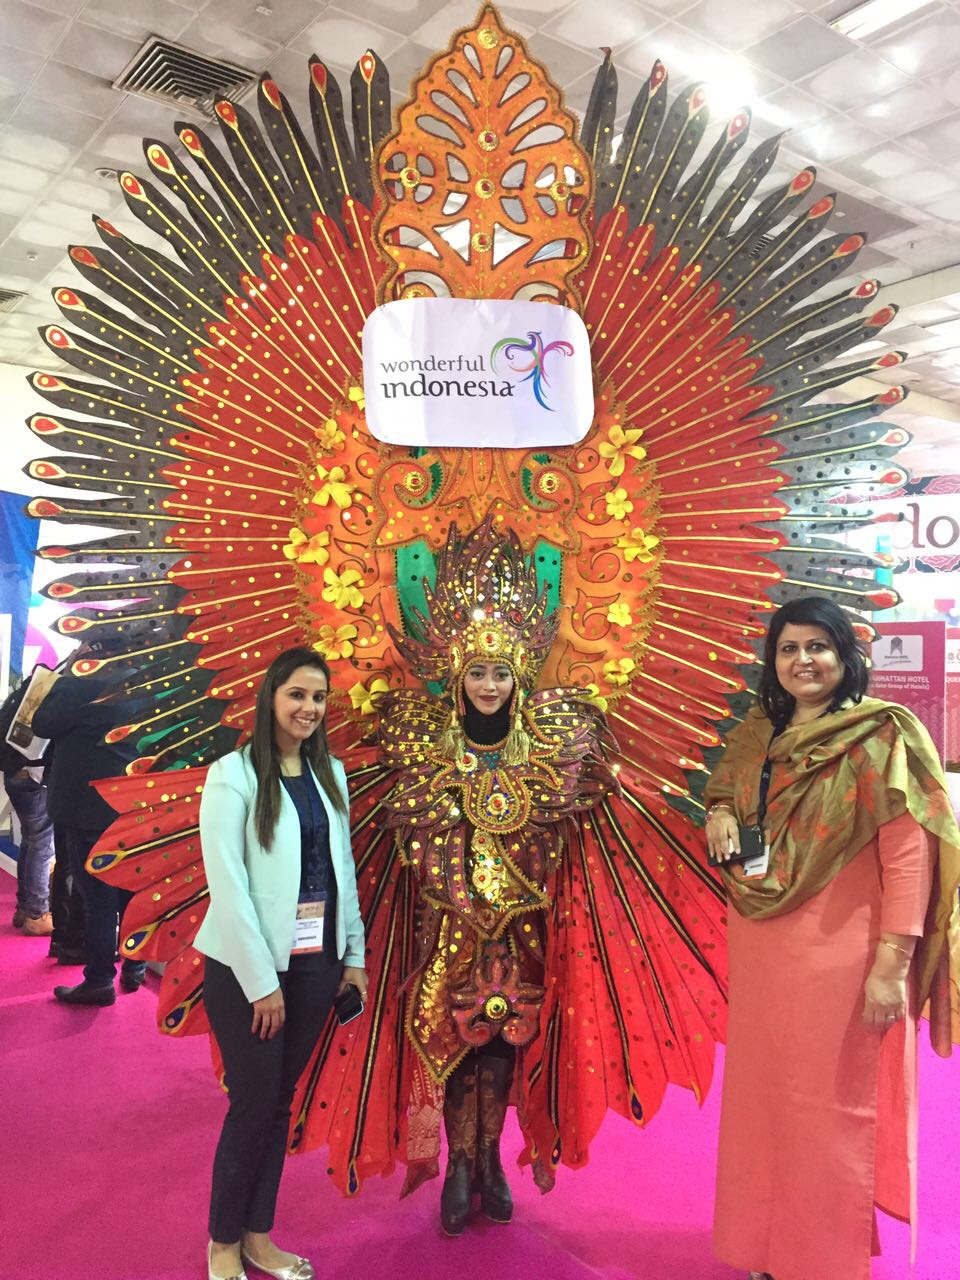 Ministry of Tourism Republic of Indonesia in association with VITO – India had exhibited at